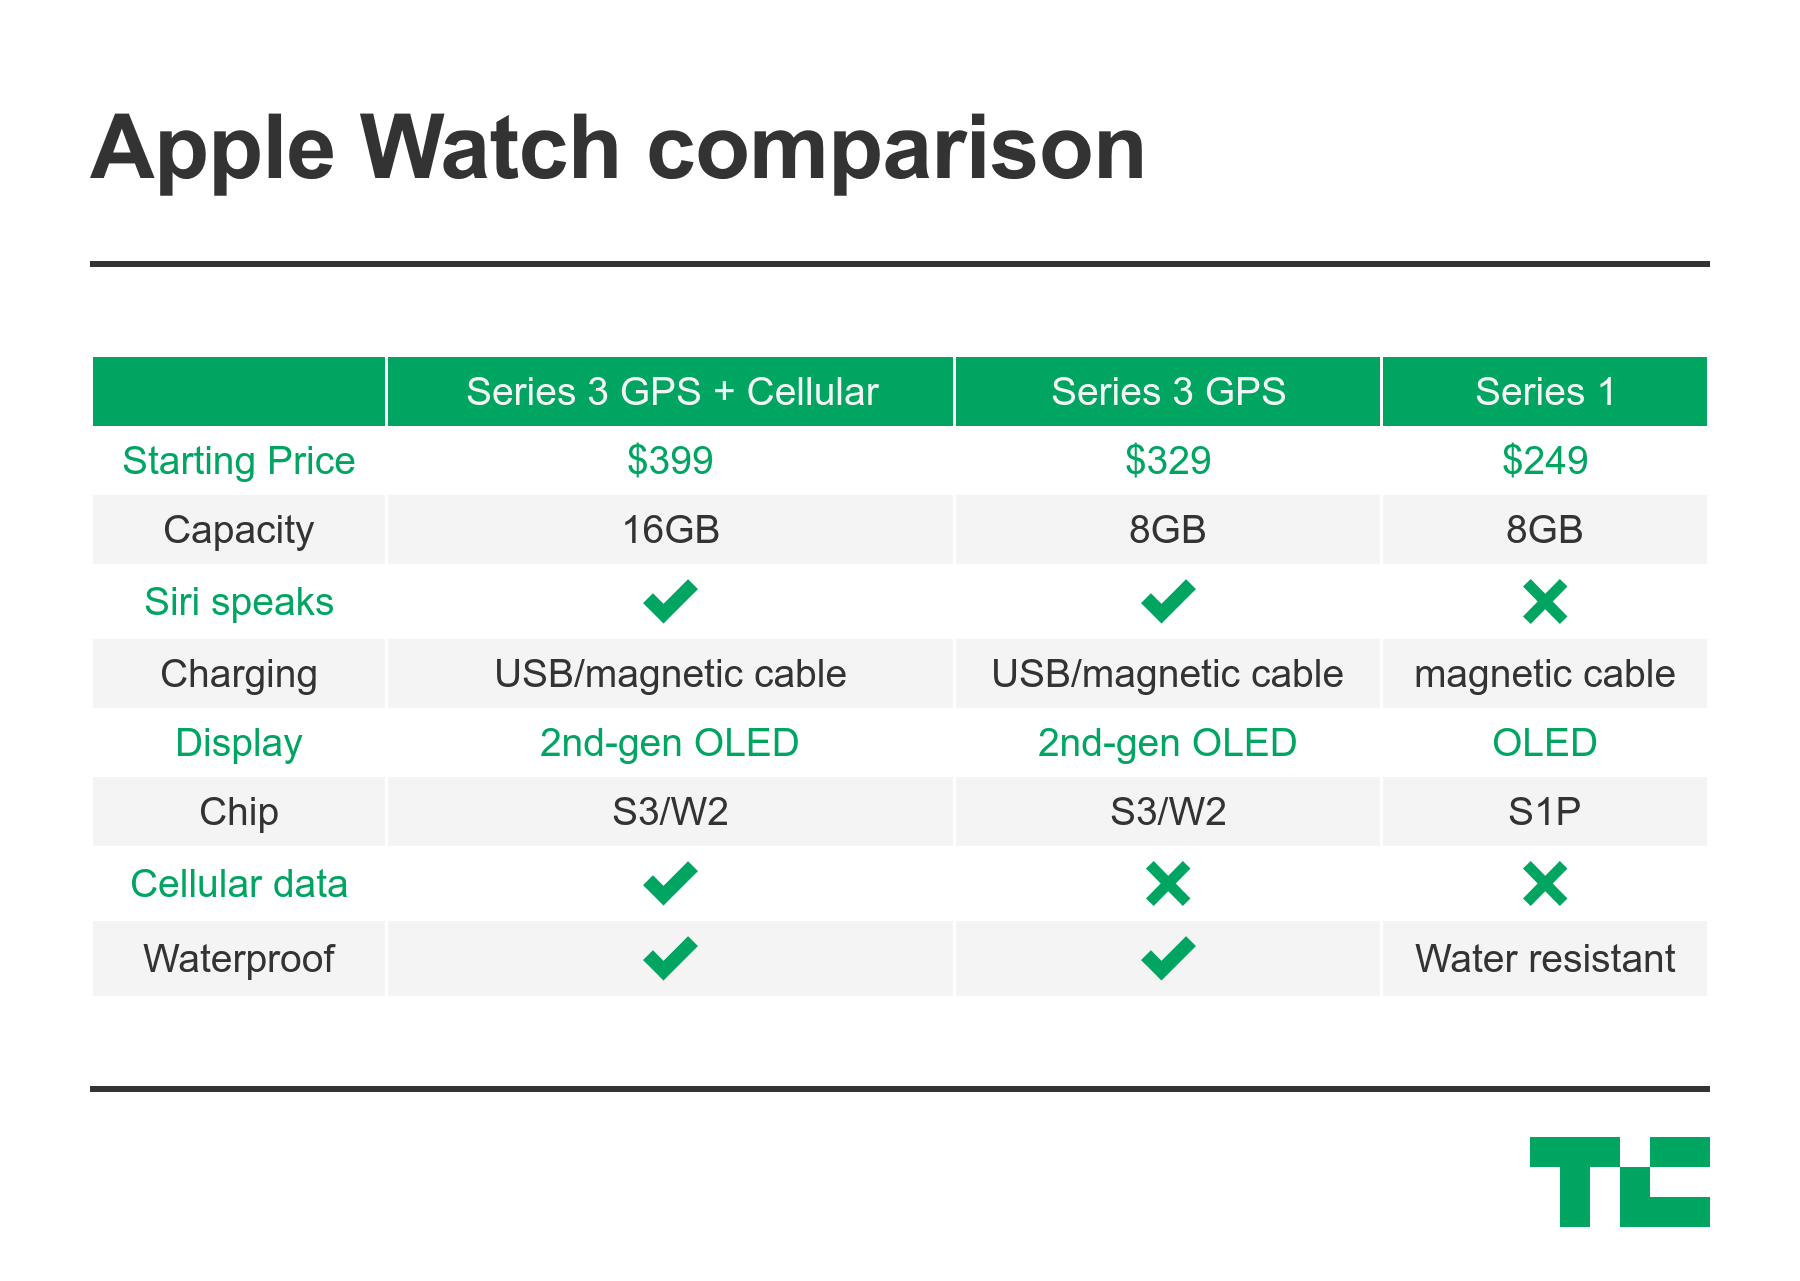 1bef5616ac9 The Apple Watch Series 3 comes with LTE connectivity